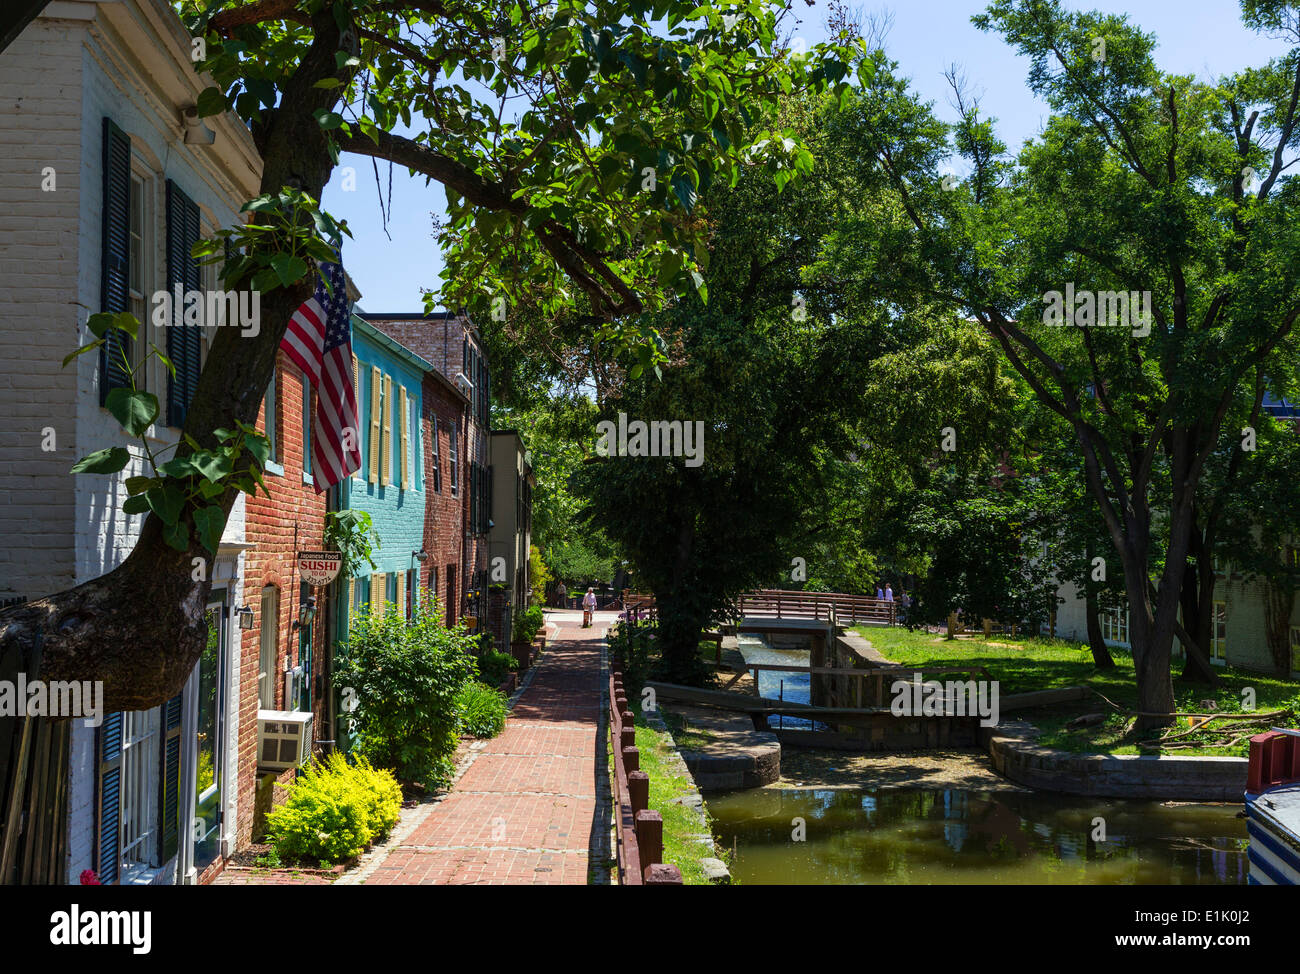 Houses alongside the Chesapeake and Ohio Canal towpath in downtown Georgetown, Washington DC, USA - Stock Image